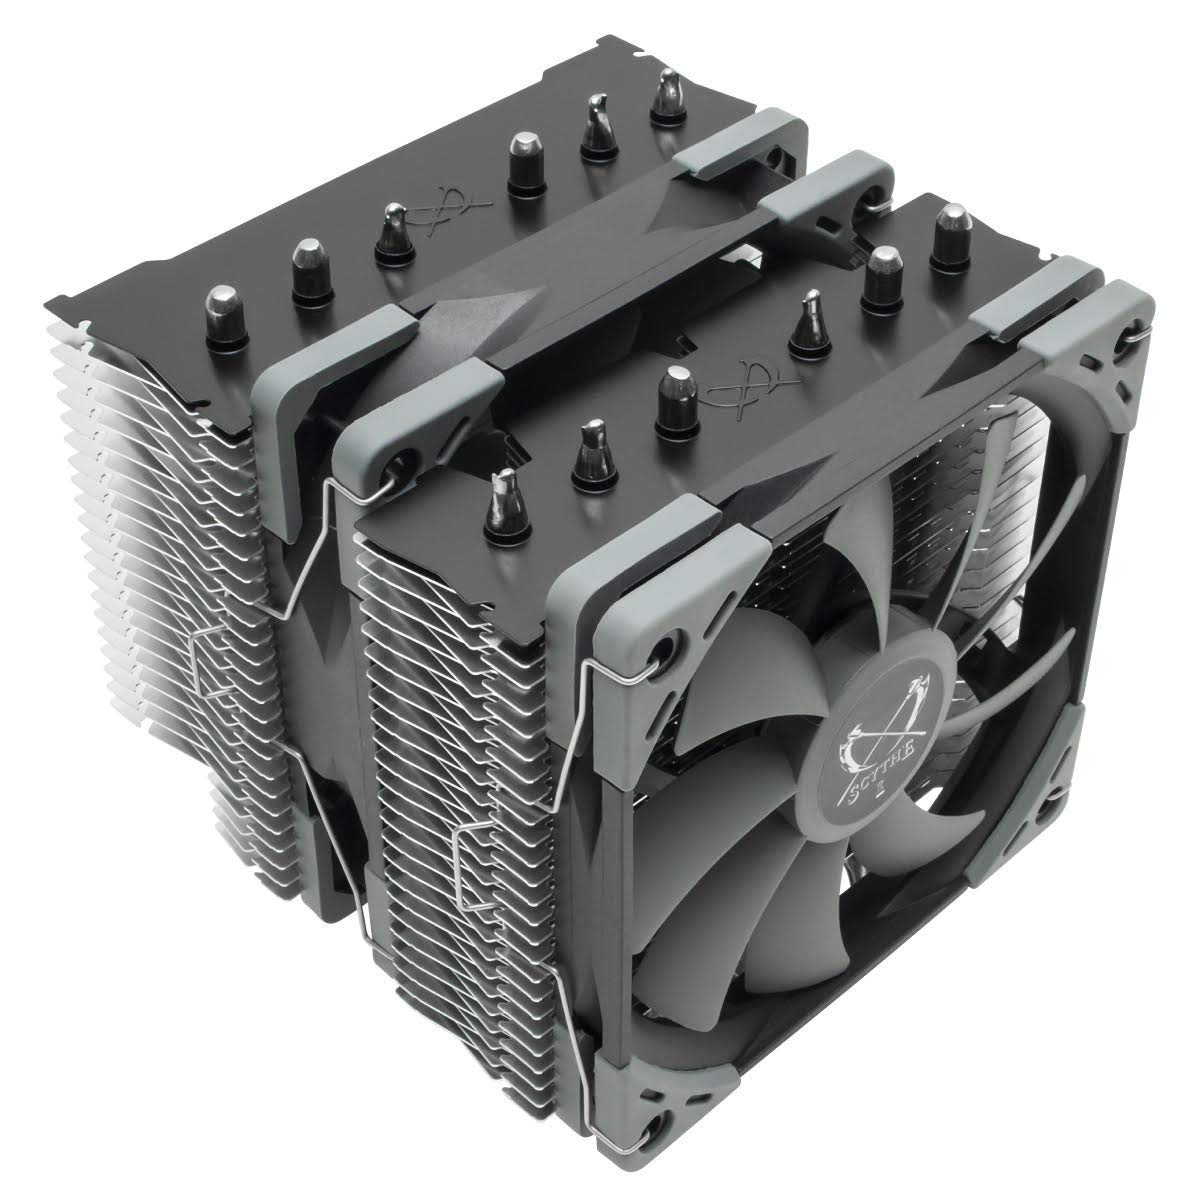 Top Low Profile CPU Cooler